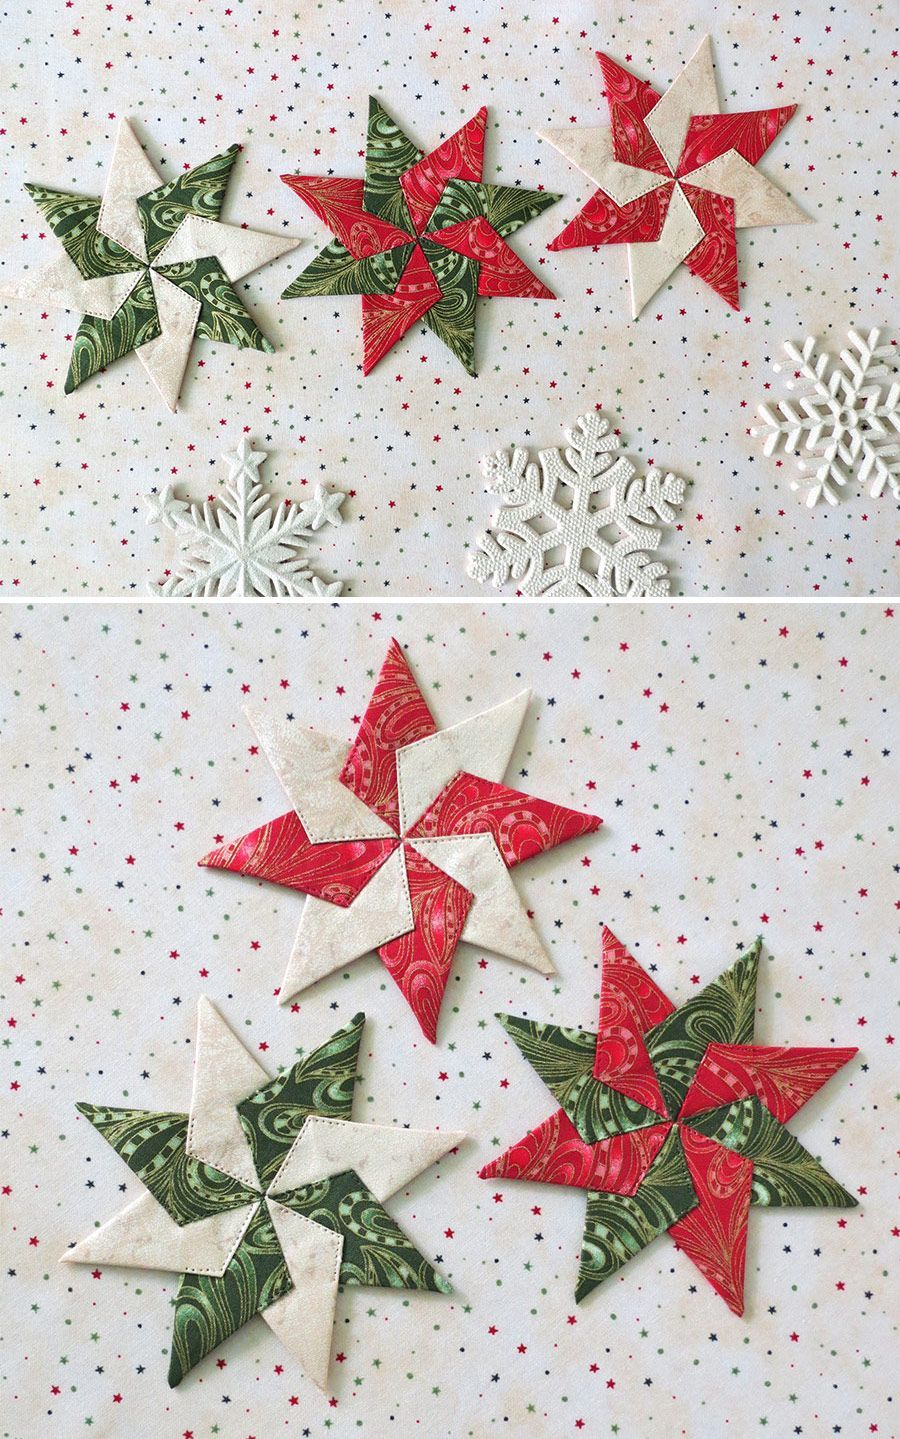 Christmas Quilt Patterns In 2020 Quilted Christmas Ornaments Christmas Ornament Pattern Christmas Ornament Crafts